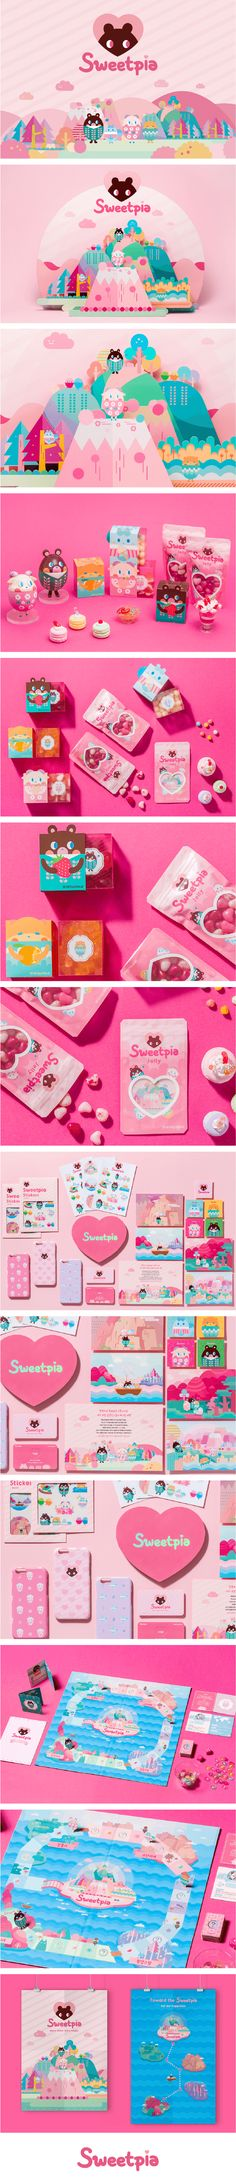 Sweetpia - Sweetpia is a jelly branding to inform endangered animals for children. We want the world to become warmer and sweeter. Branding / Packaging / Character Design